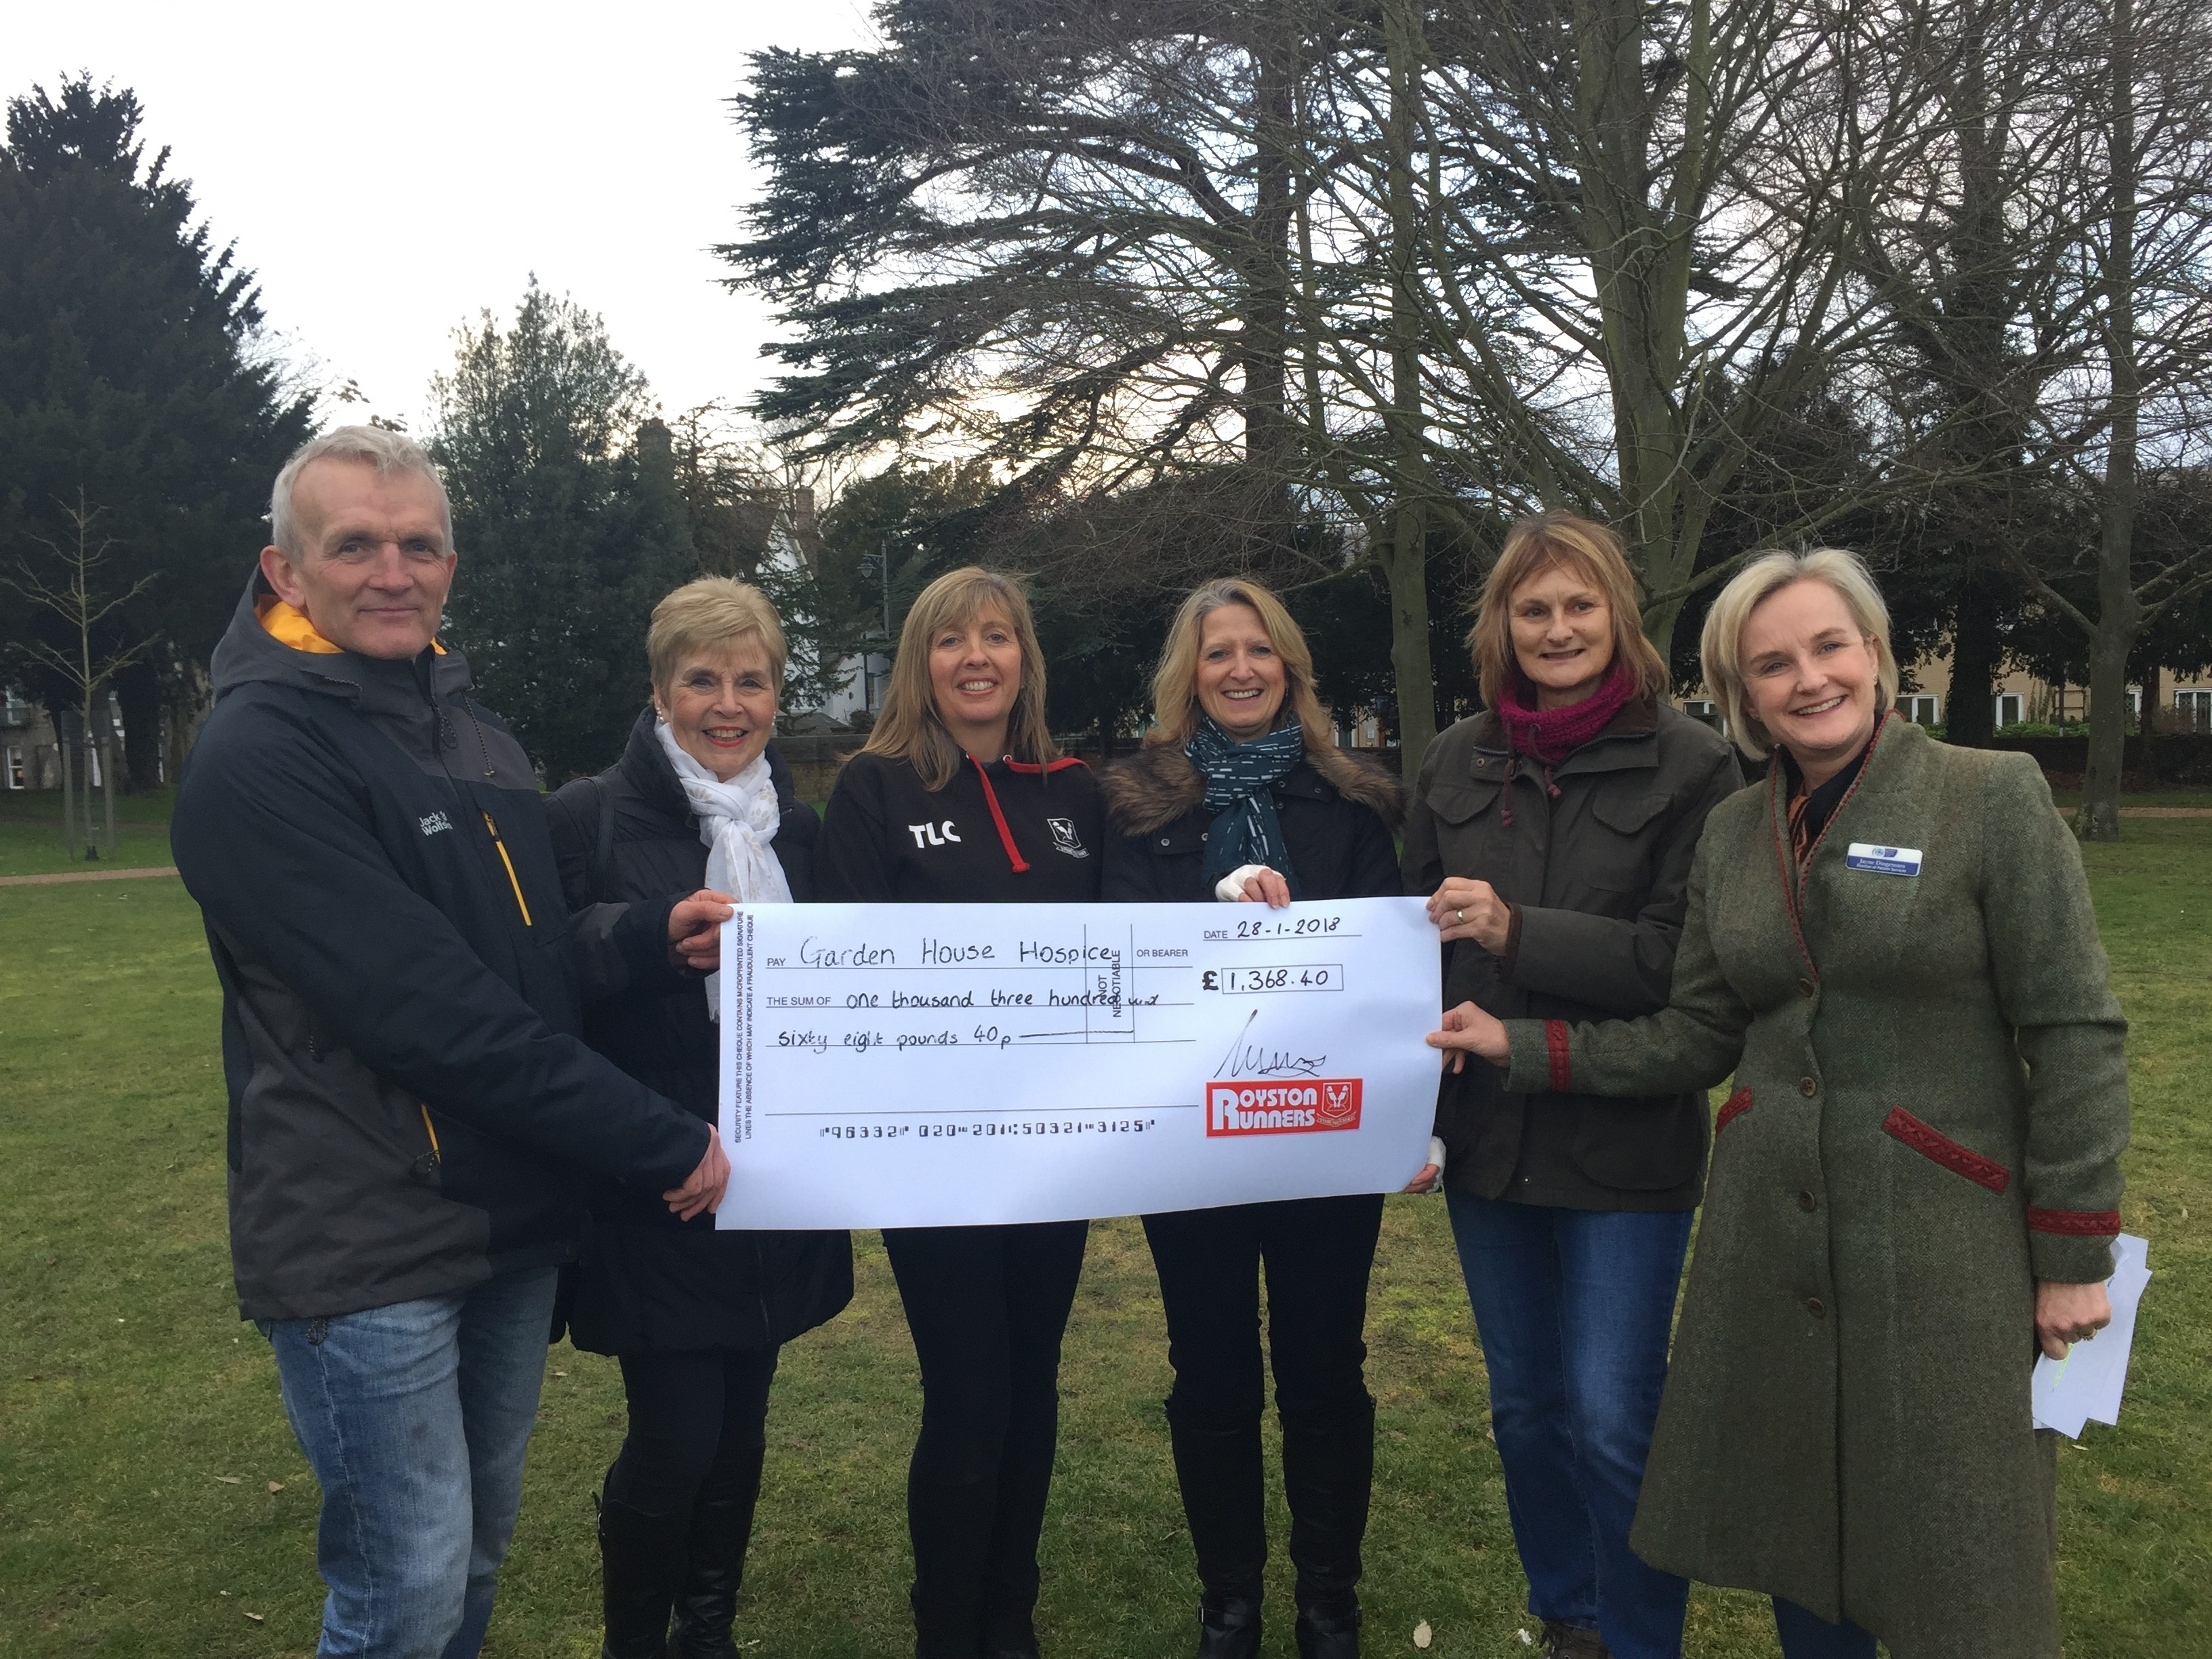 Garden House Hospice - Our Latest Donation - Royston Runners pertaining to Garden House Hospice Tree Collection